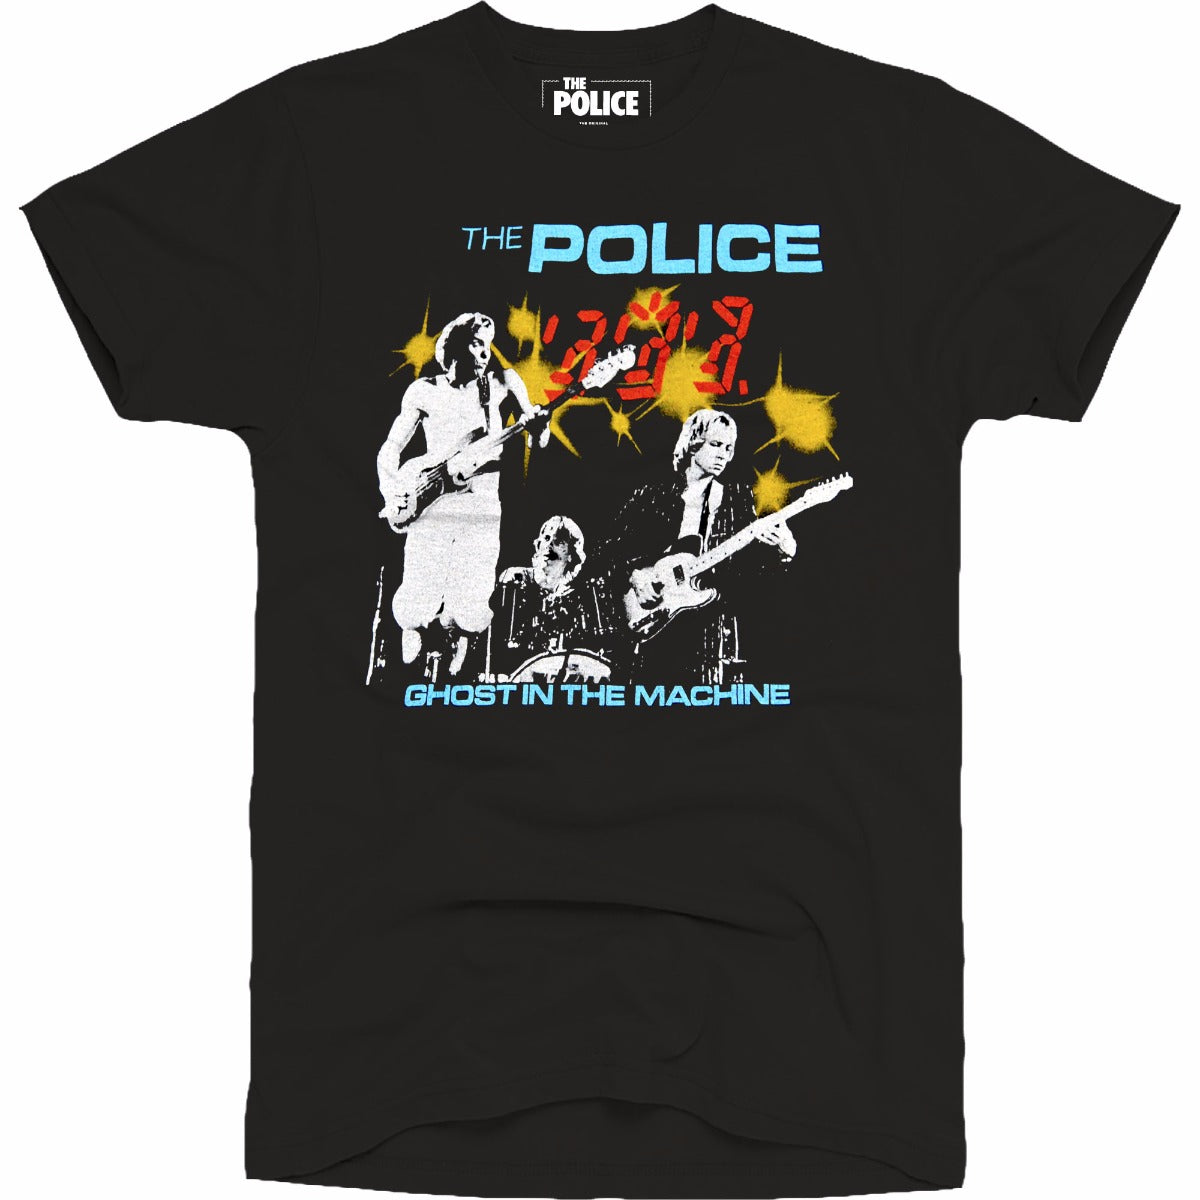 The Police Ghost in the Machine World's Best Tee